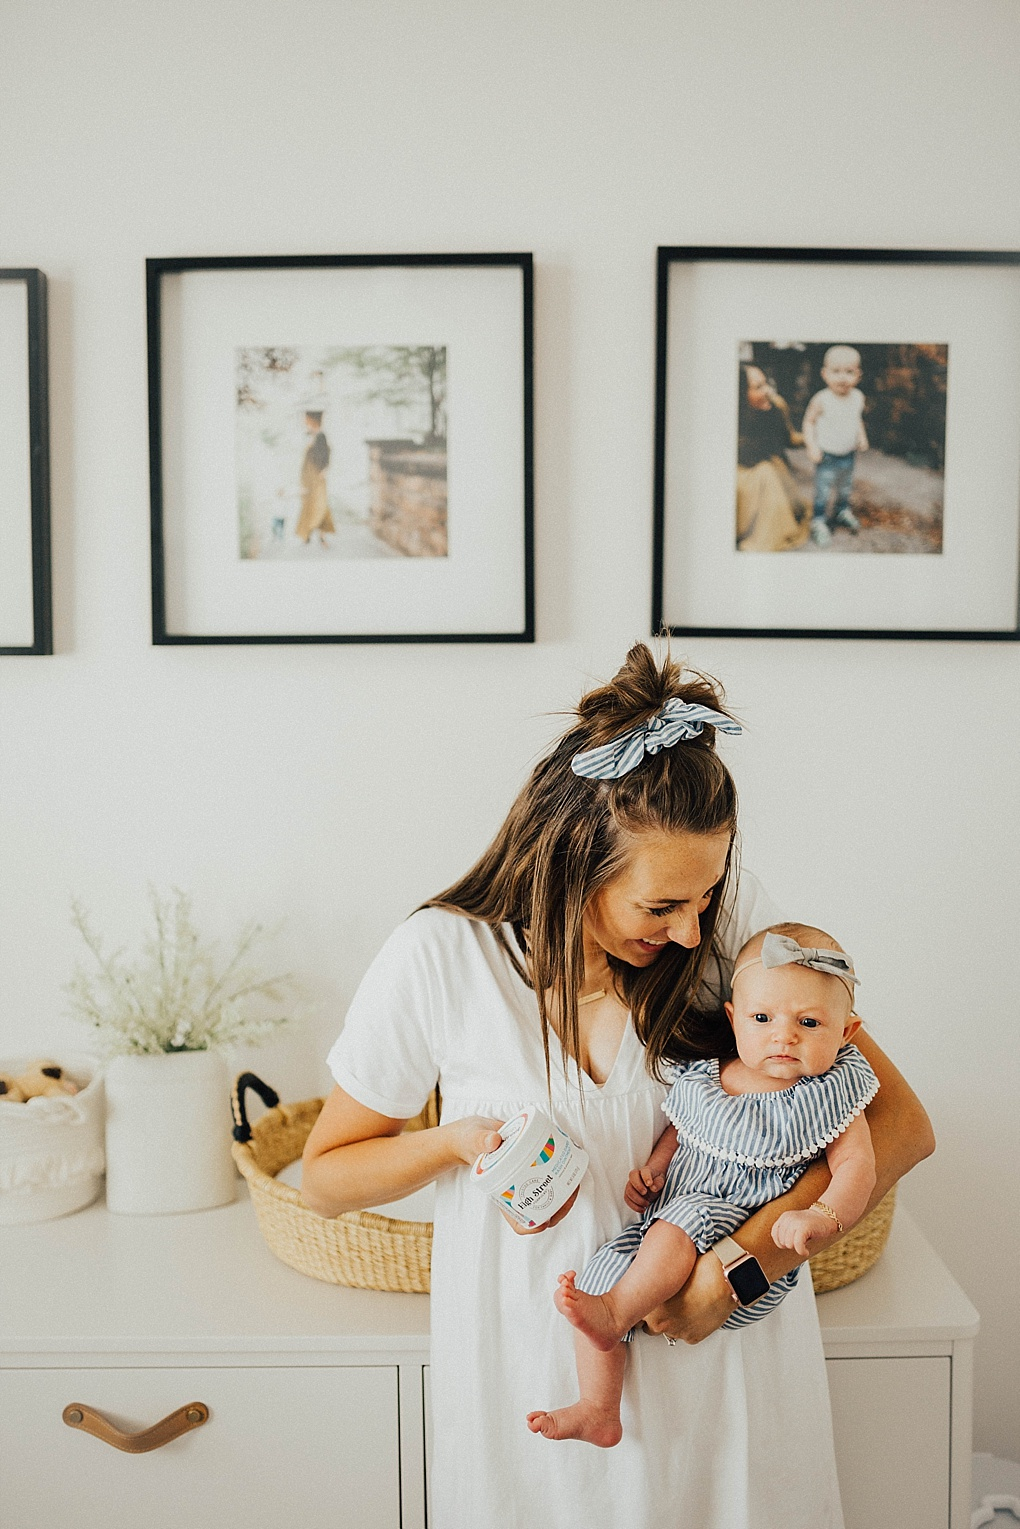 Diaper changes can be a bit frustrating, especially with a newborn! Utah Style blogger Dani Marie is sharing her top tips on making diaper changes easier! See how HERE!